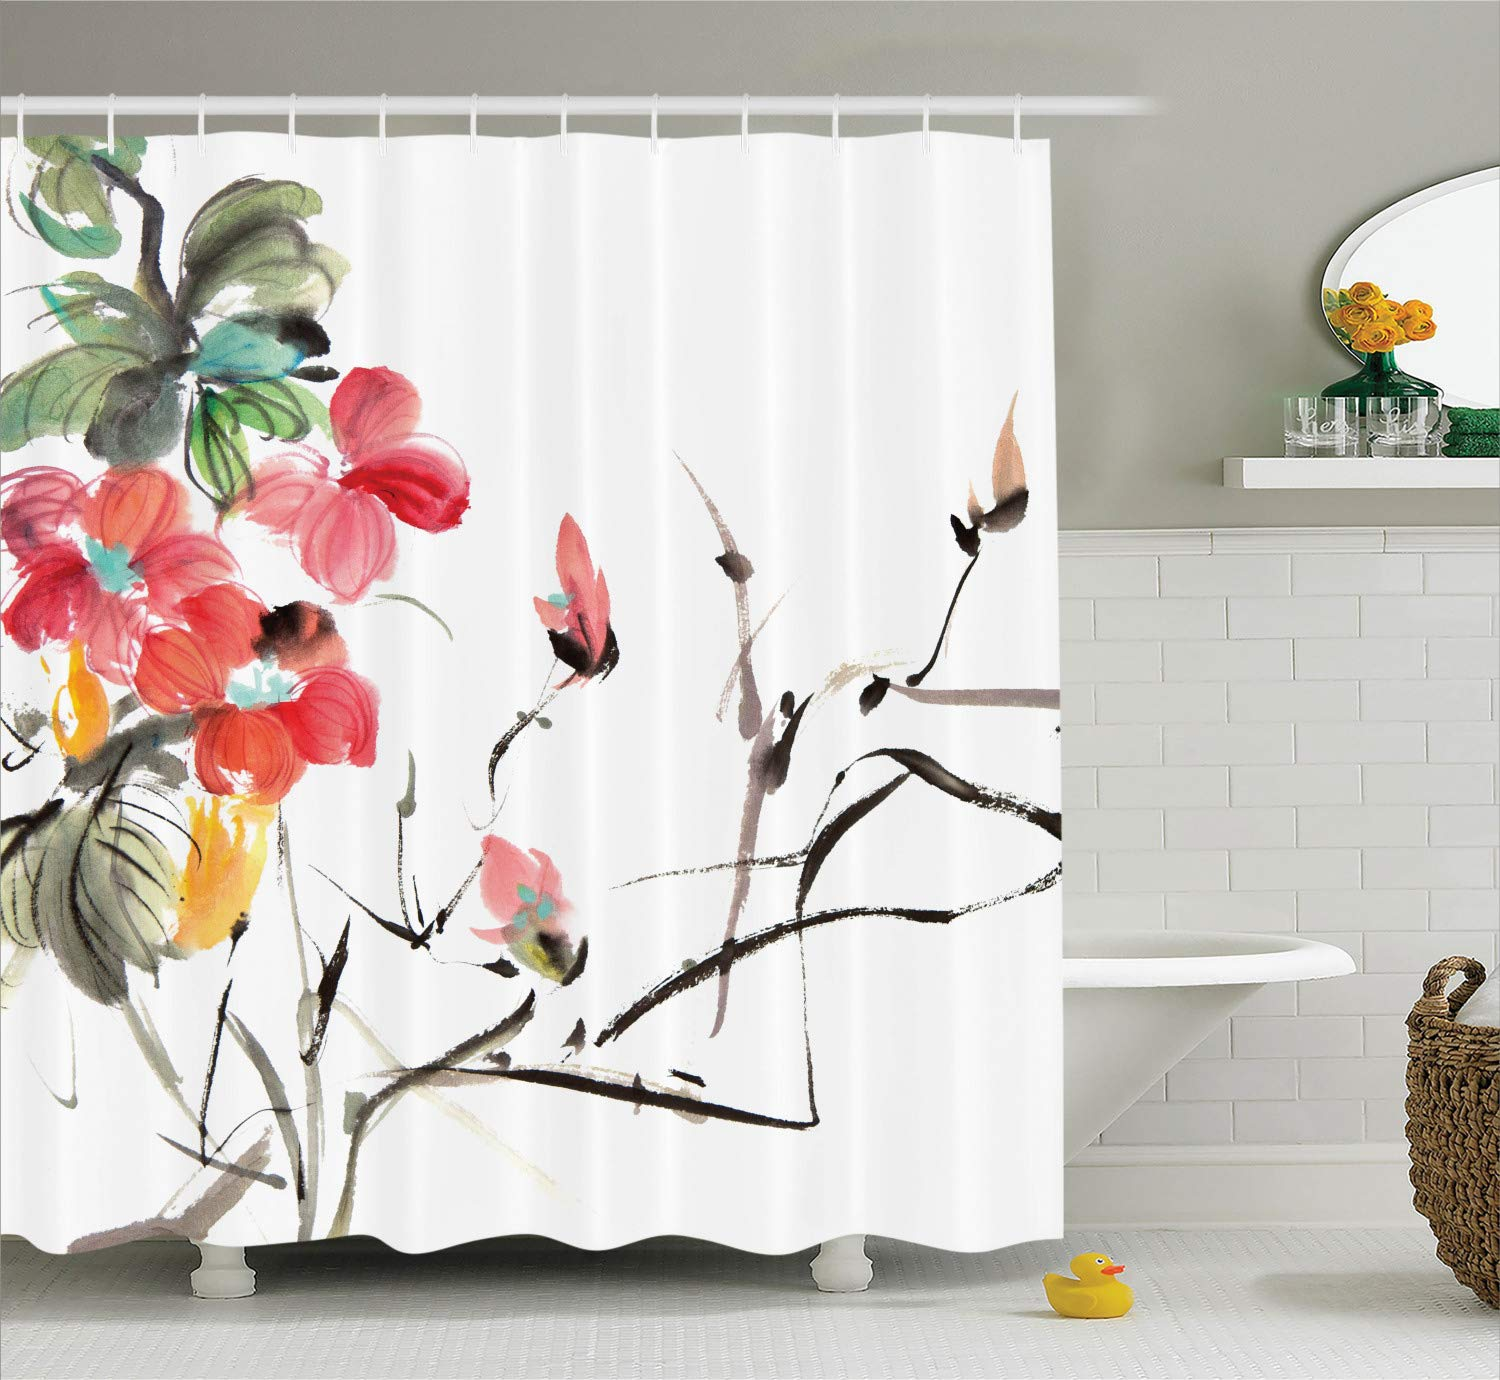 Ambesonne Japanese Decor Collection, Popular Early Period Asian Watercolors Design Print with Vivid Floral Motifs Art Picture, Polyester Fabric Bathroom Shower Curtain, 84 Inches Extra Long, Multi